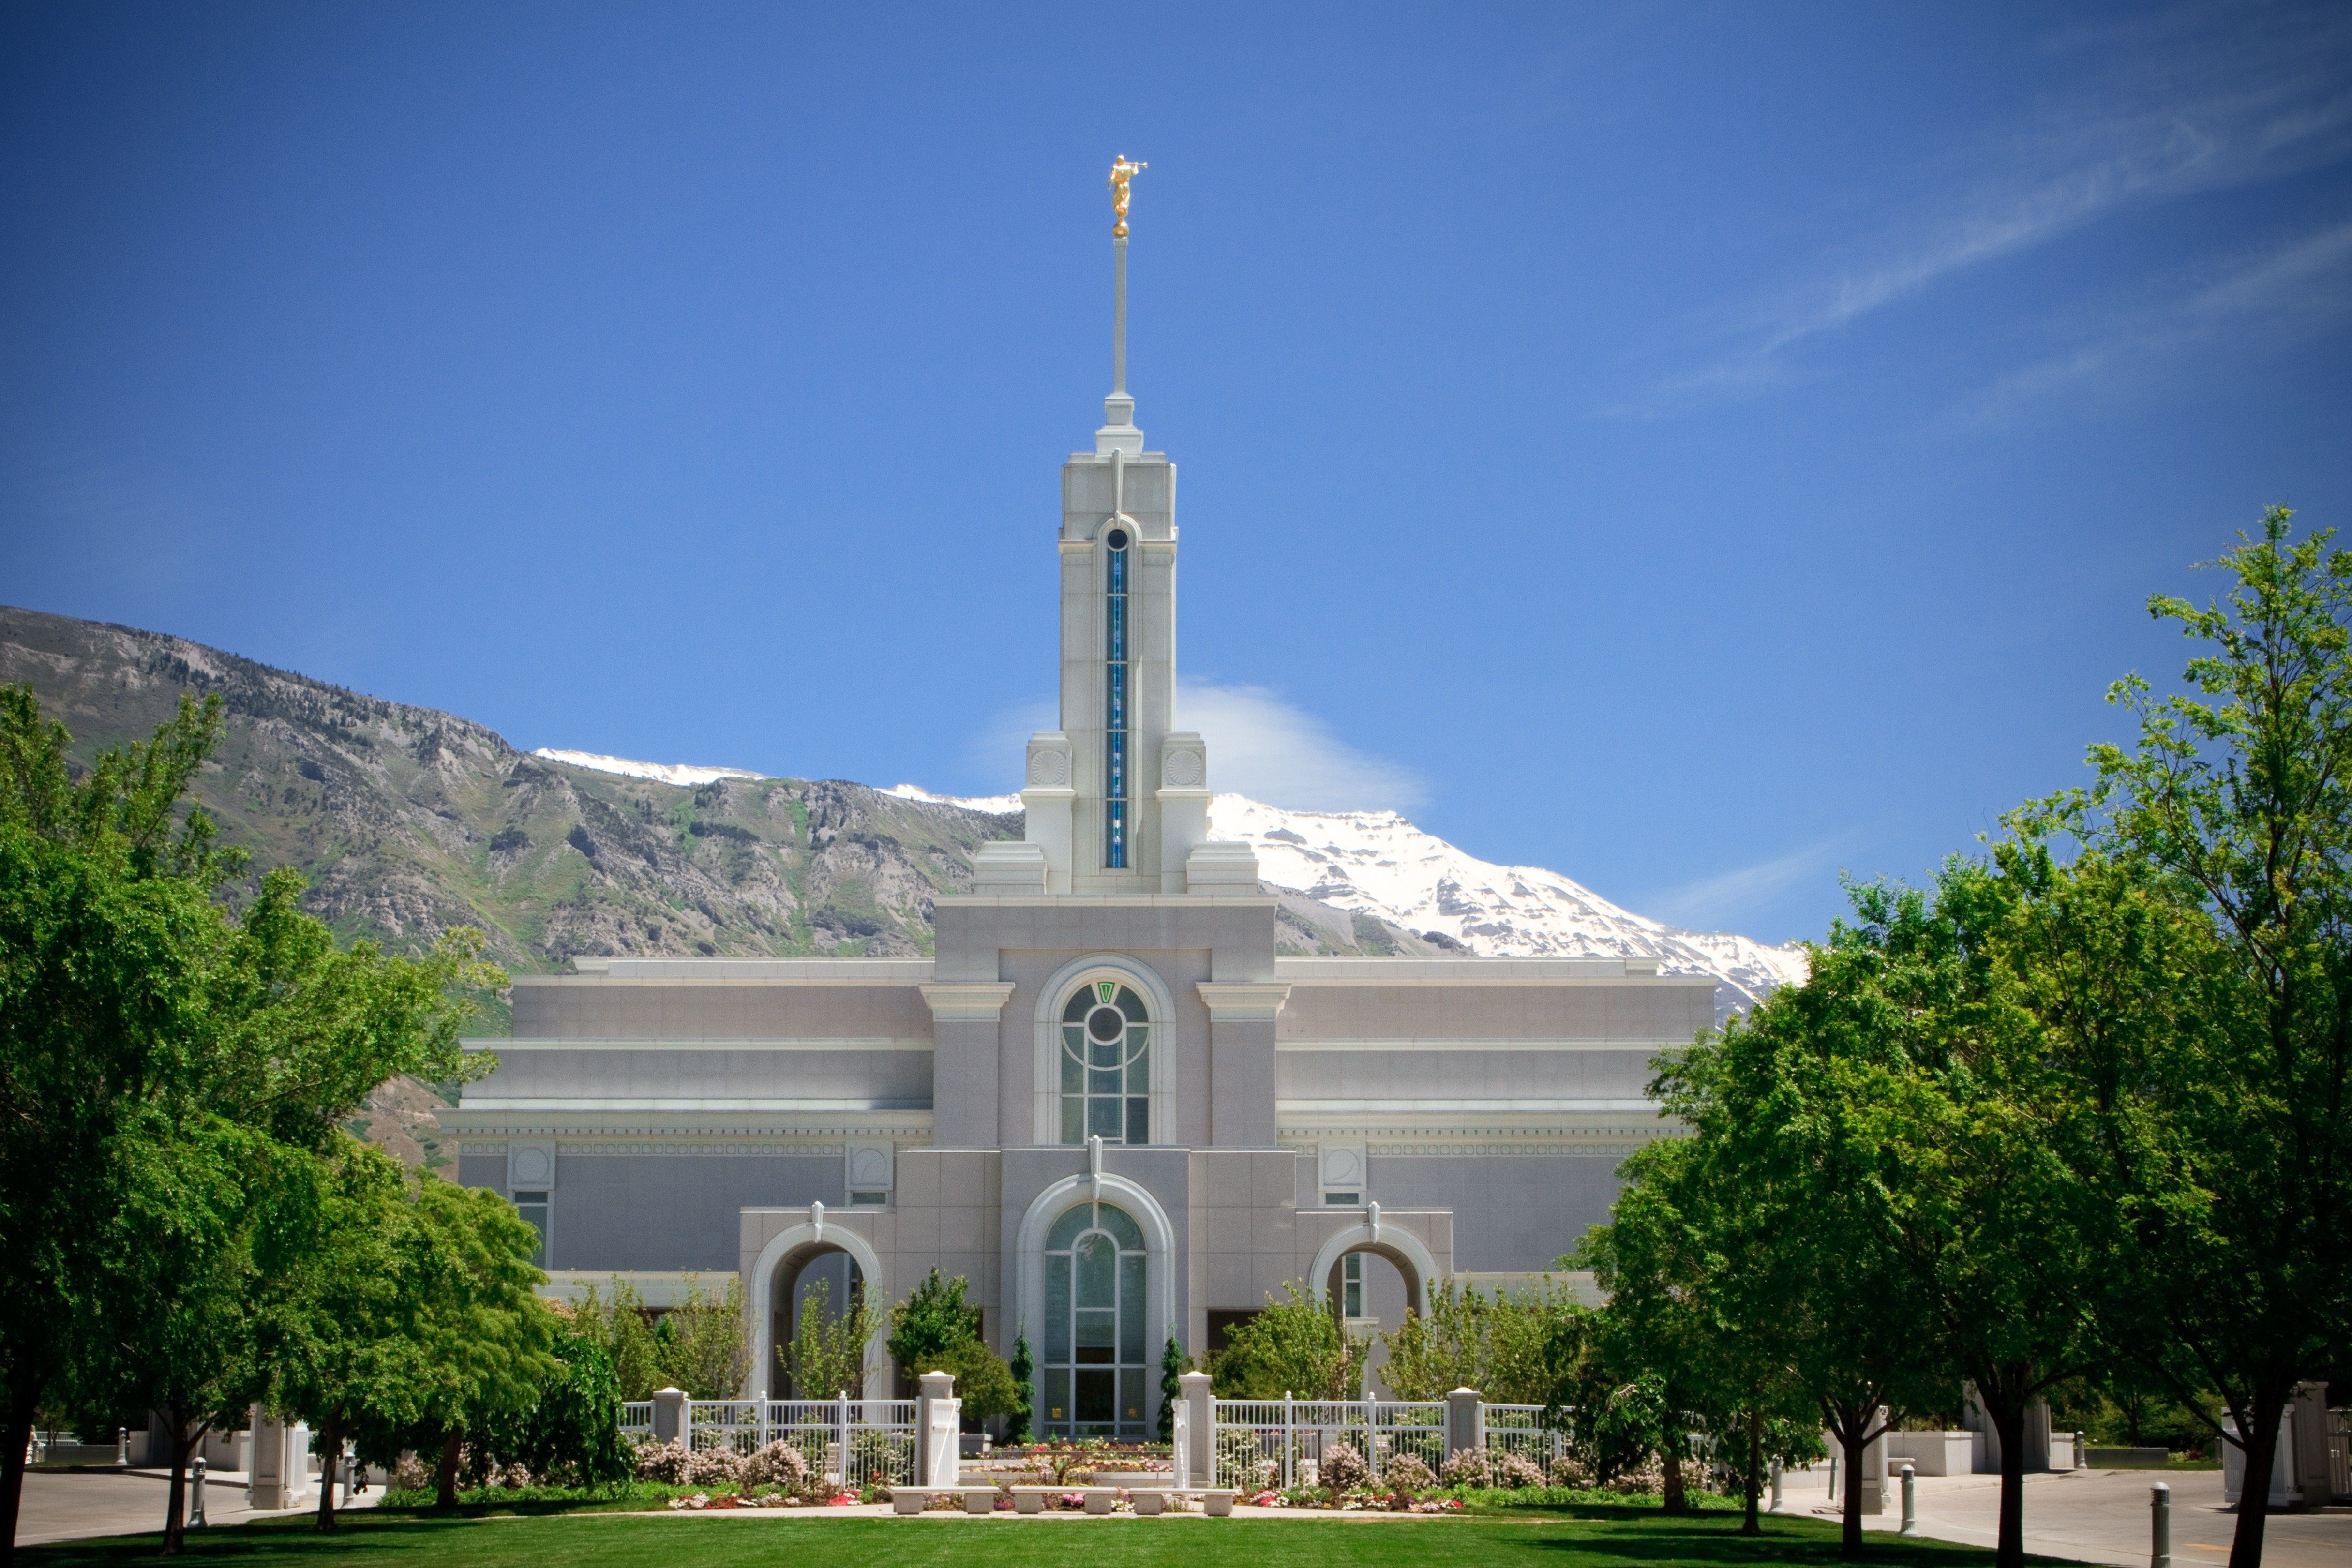 The Mount Timpanogos Utah Temple on a sunny day.